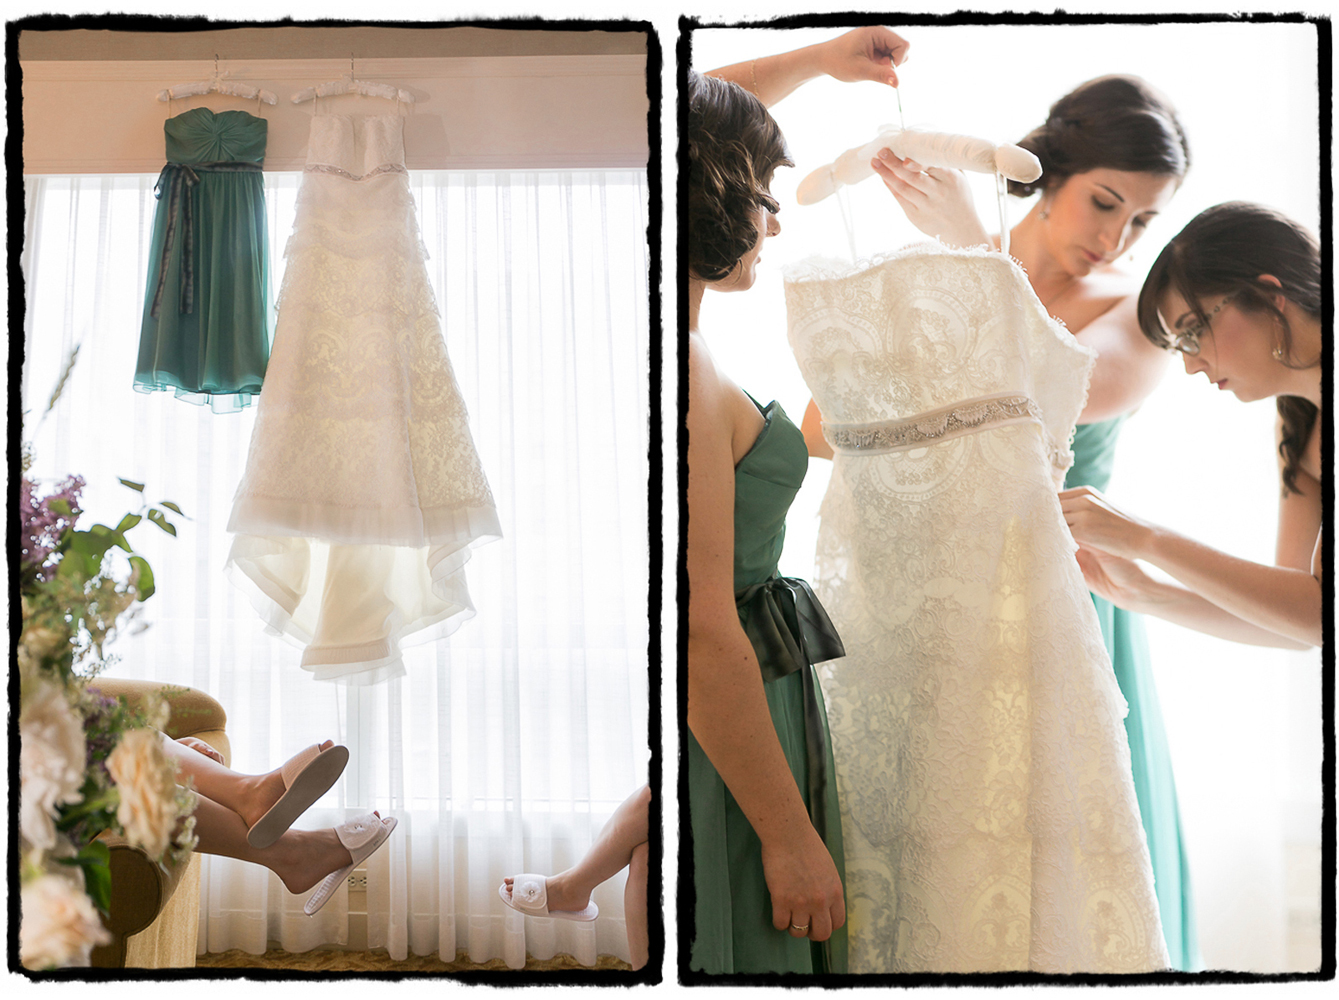 Alexandra's bridesmaids prepare the dress for her to step into for her wedding at The Palm House..